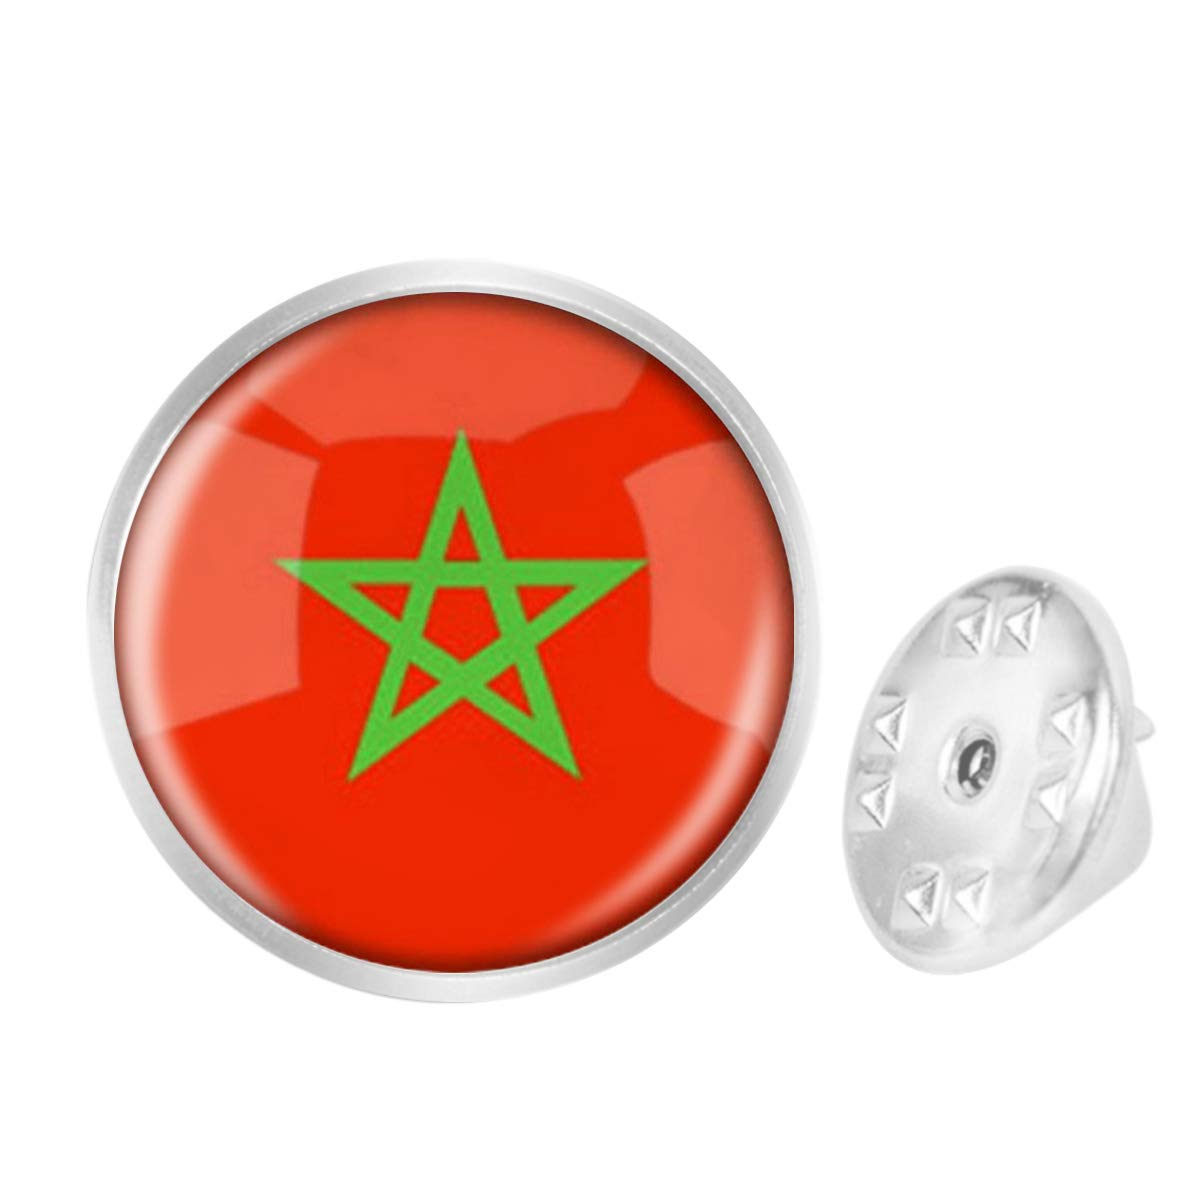 WAZZIT Round Metal Tie Tack Hat Lapel Pin Brooches The Kingdom of Morocco National Flag Banquet Badge Enamel Pins Trendy Accessory Jacket T-Shirt